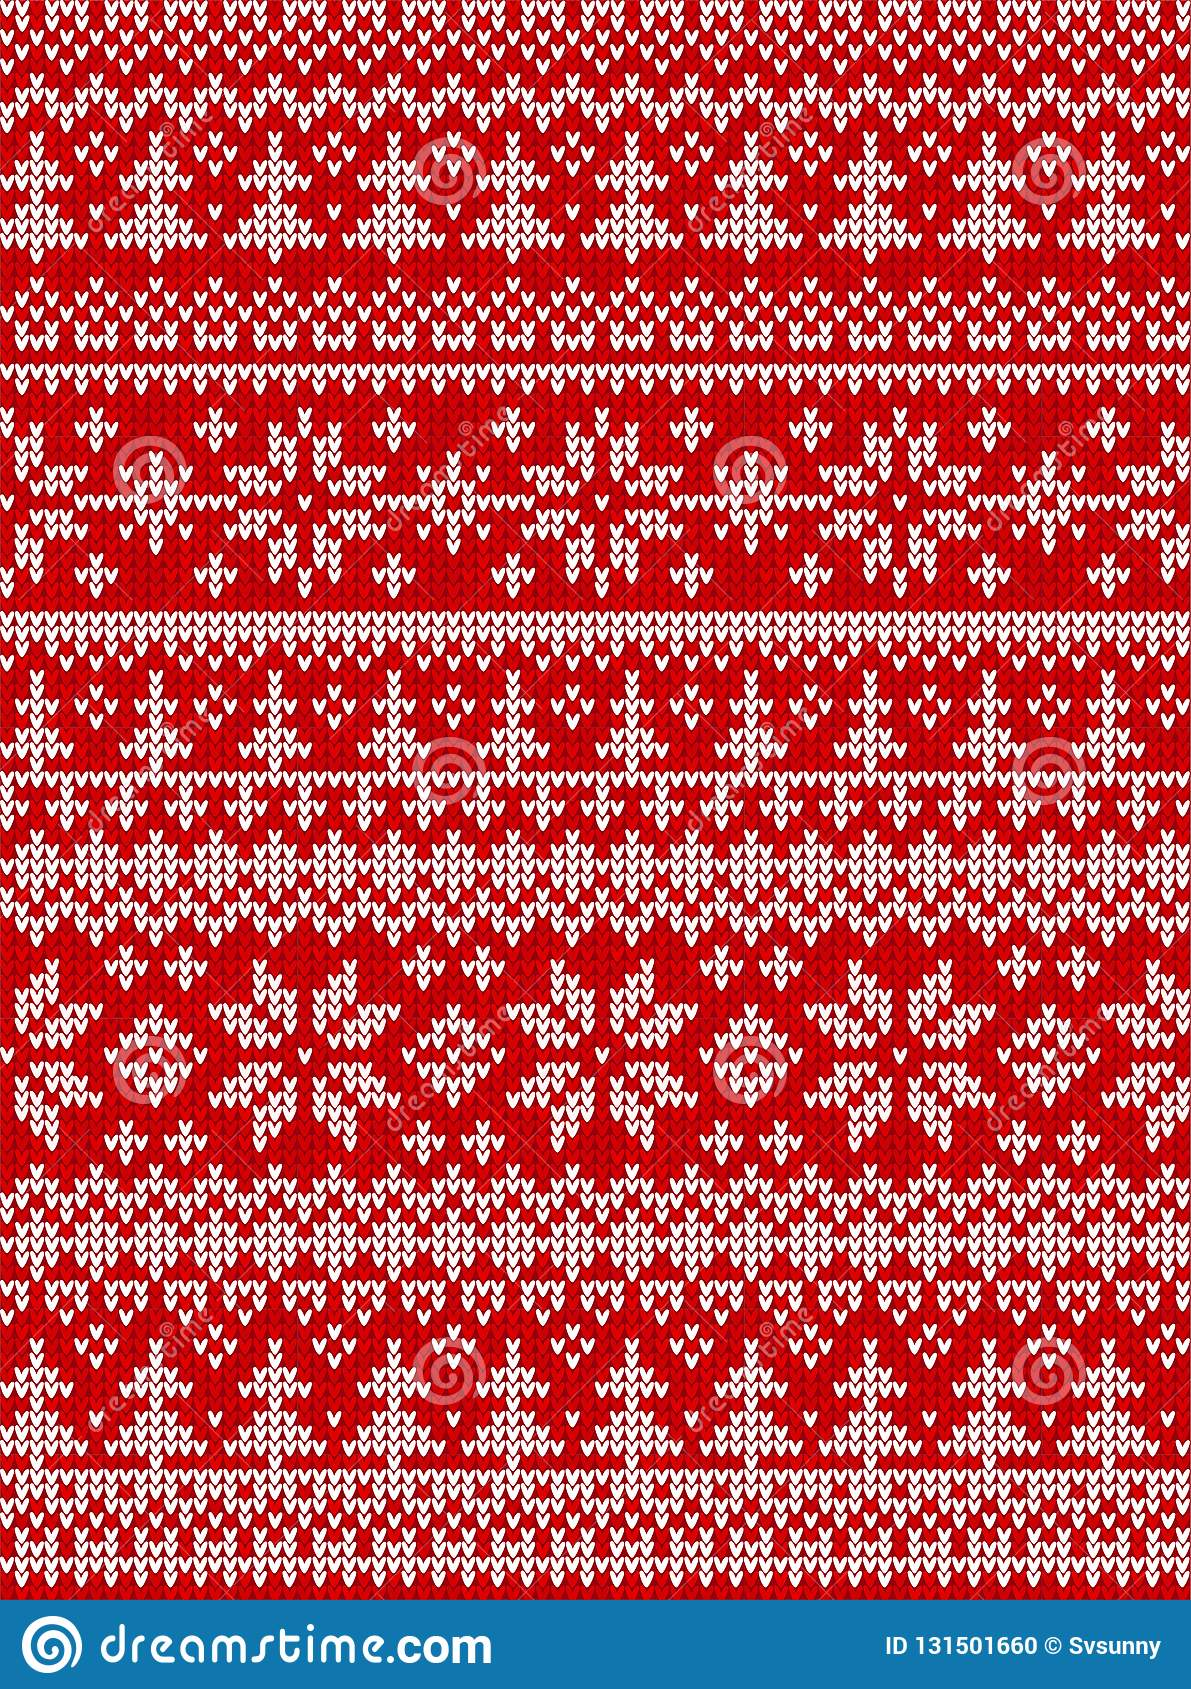 Ugly Sweater Merry Christmas Happy New Year Vector Illustration Knitted Background Seamless Pattern Folk Style Scandinavian Stock Vector Illustration Of Family Knit 131501660